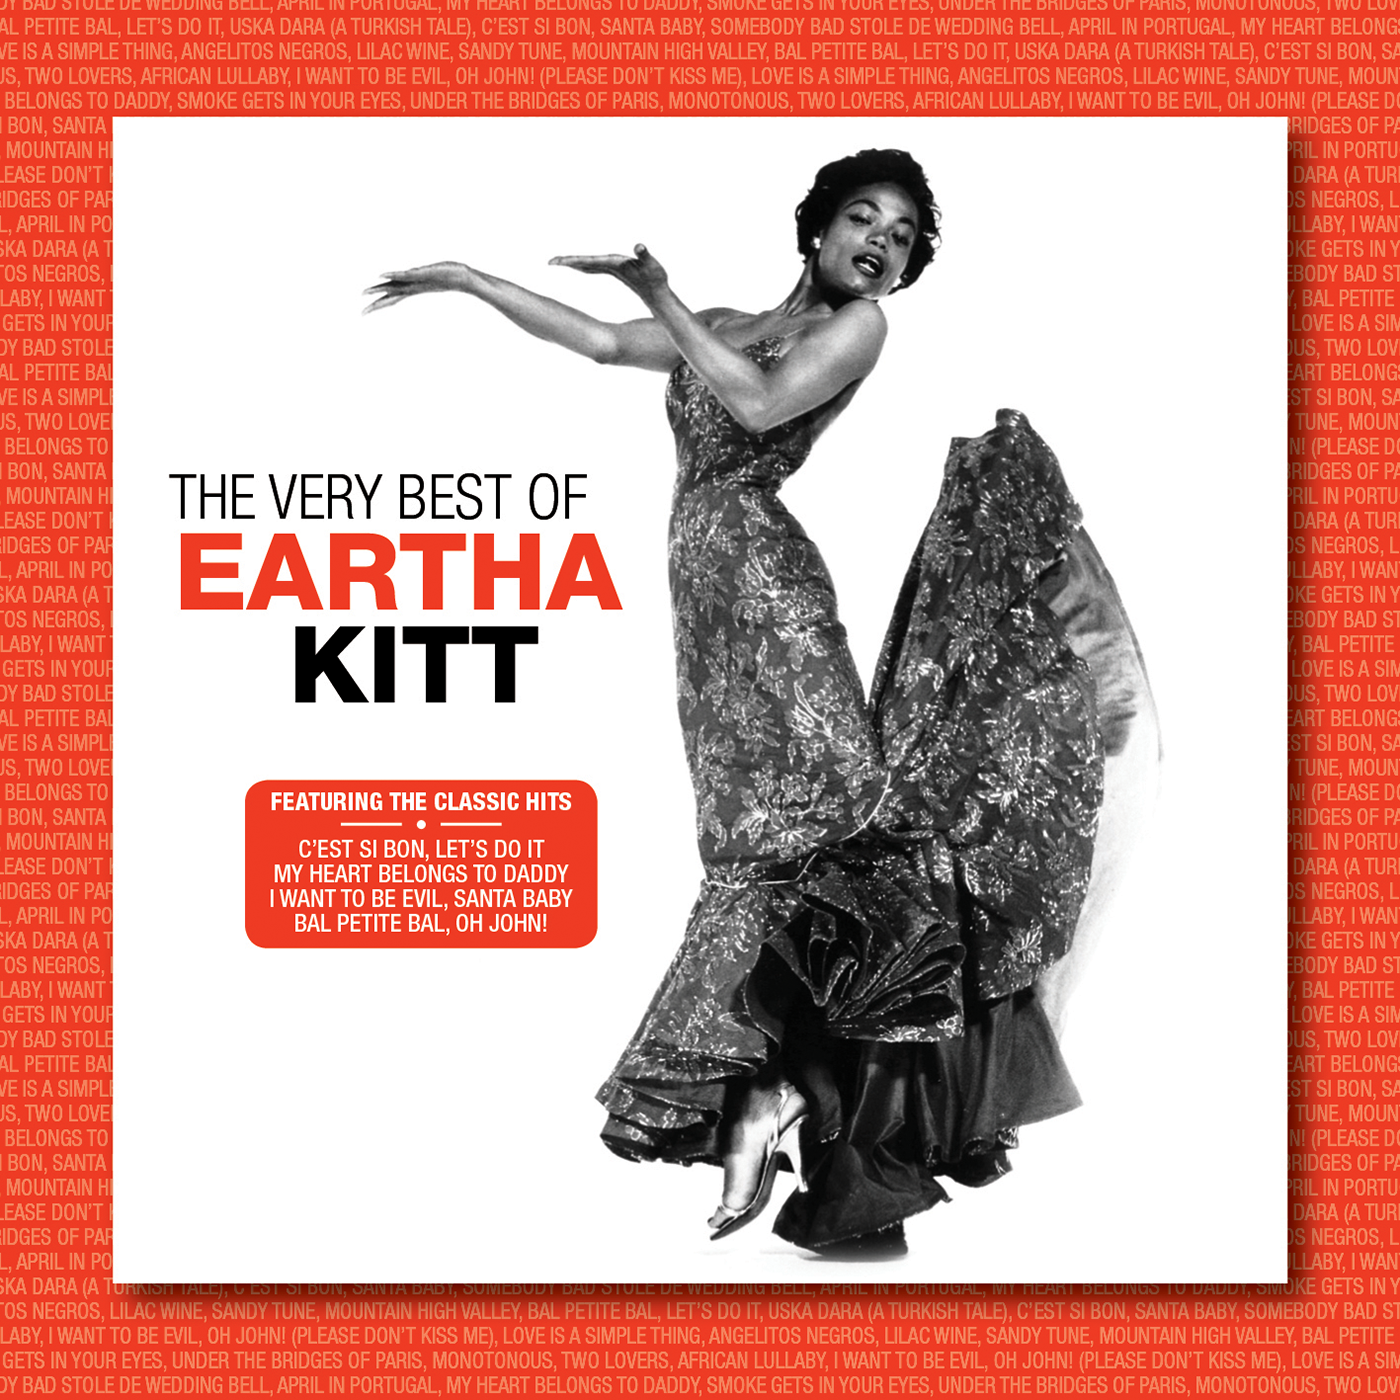 FANFARE181 - EARTHA KITT - THE VERY BEST